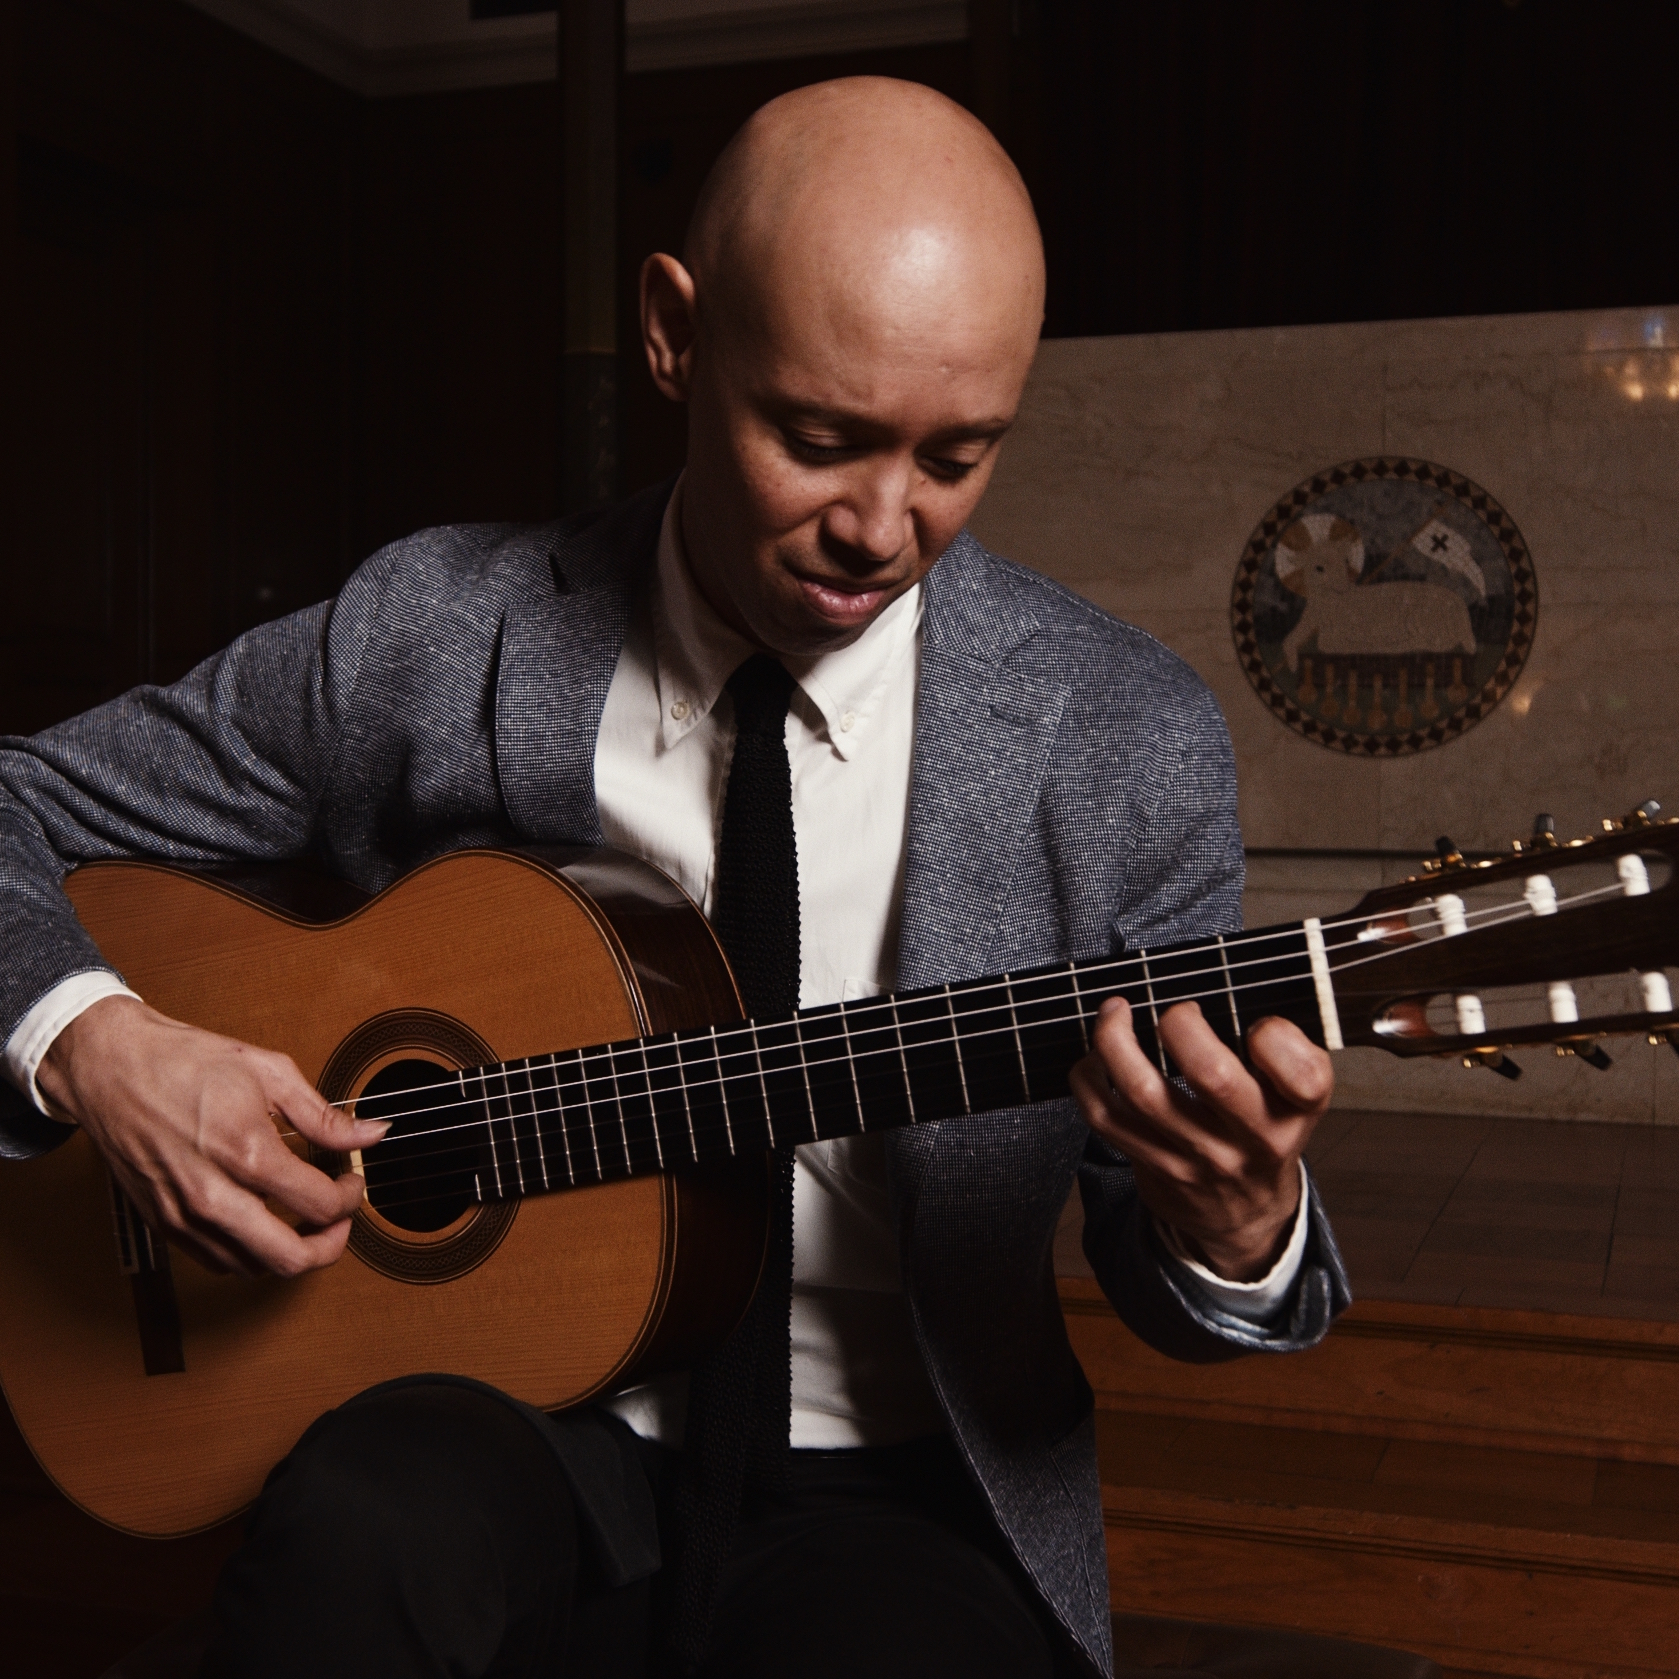 A photo of Philip Graulty playing the guitar.